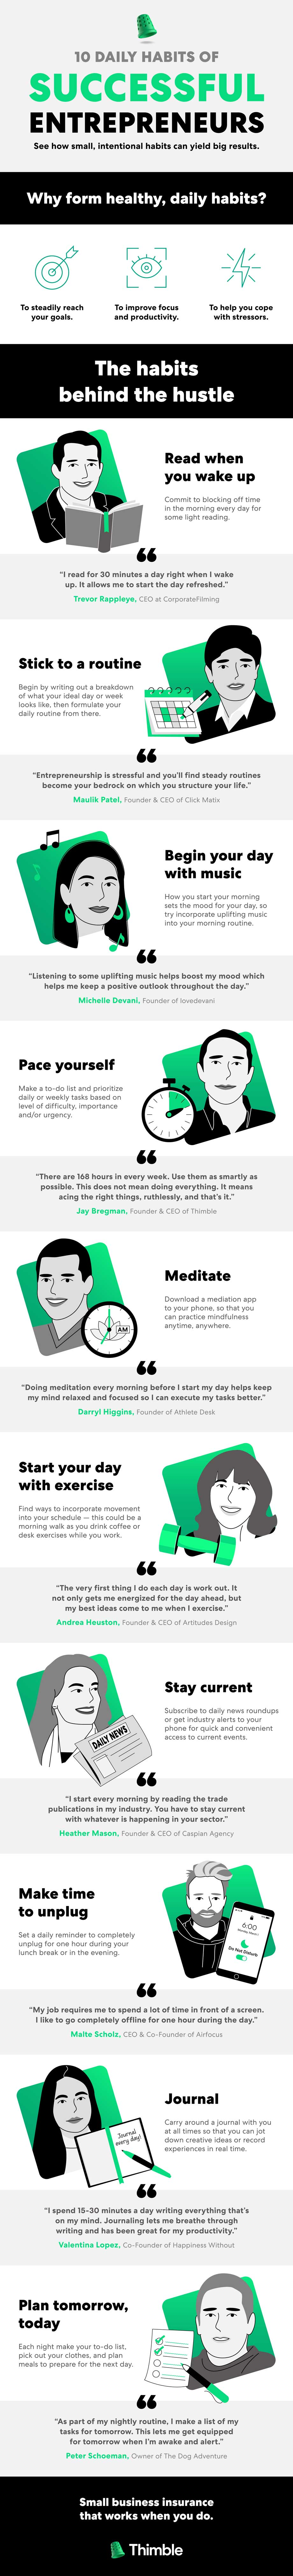 Infographic The Habits That Help Entrepreneurs Succeed